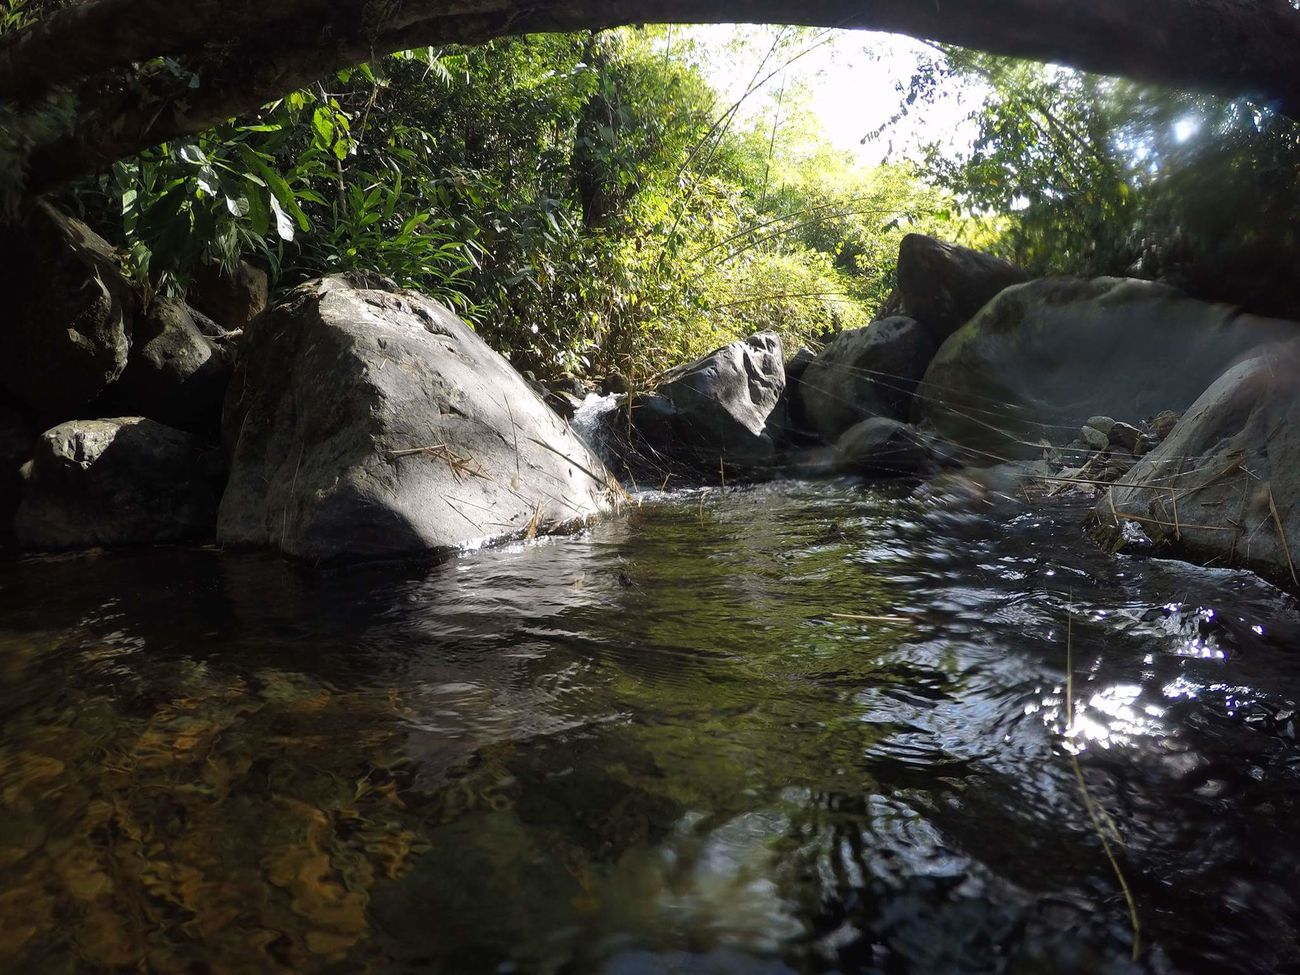 Rock Nature River Non-urban Scene Tranquility Green Nature Beauty In Nature Tranquil Scene Flowing Water GoPrography Goprouniverse Goprophotography Gopro Shots Goprohero4 Gopro Colombia